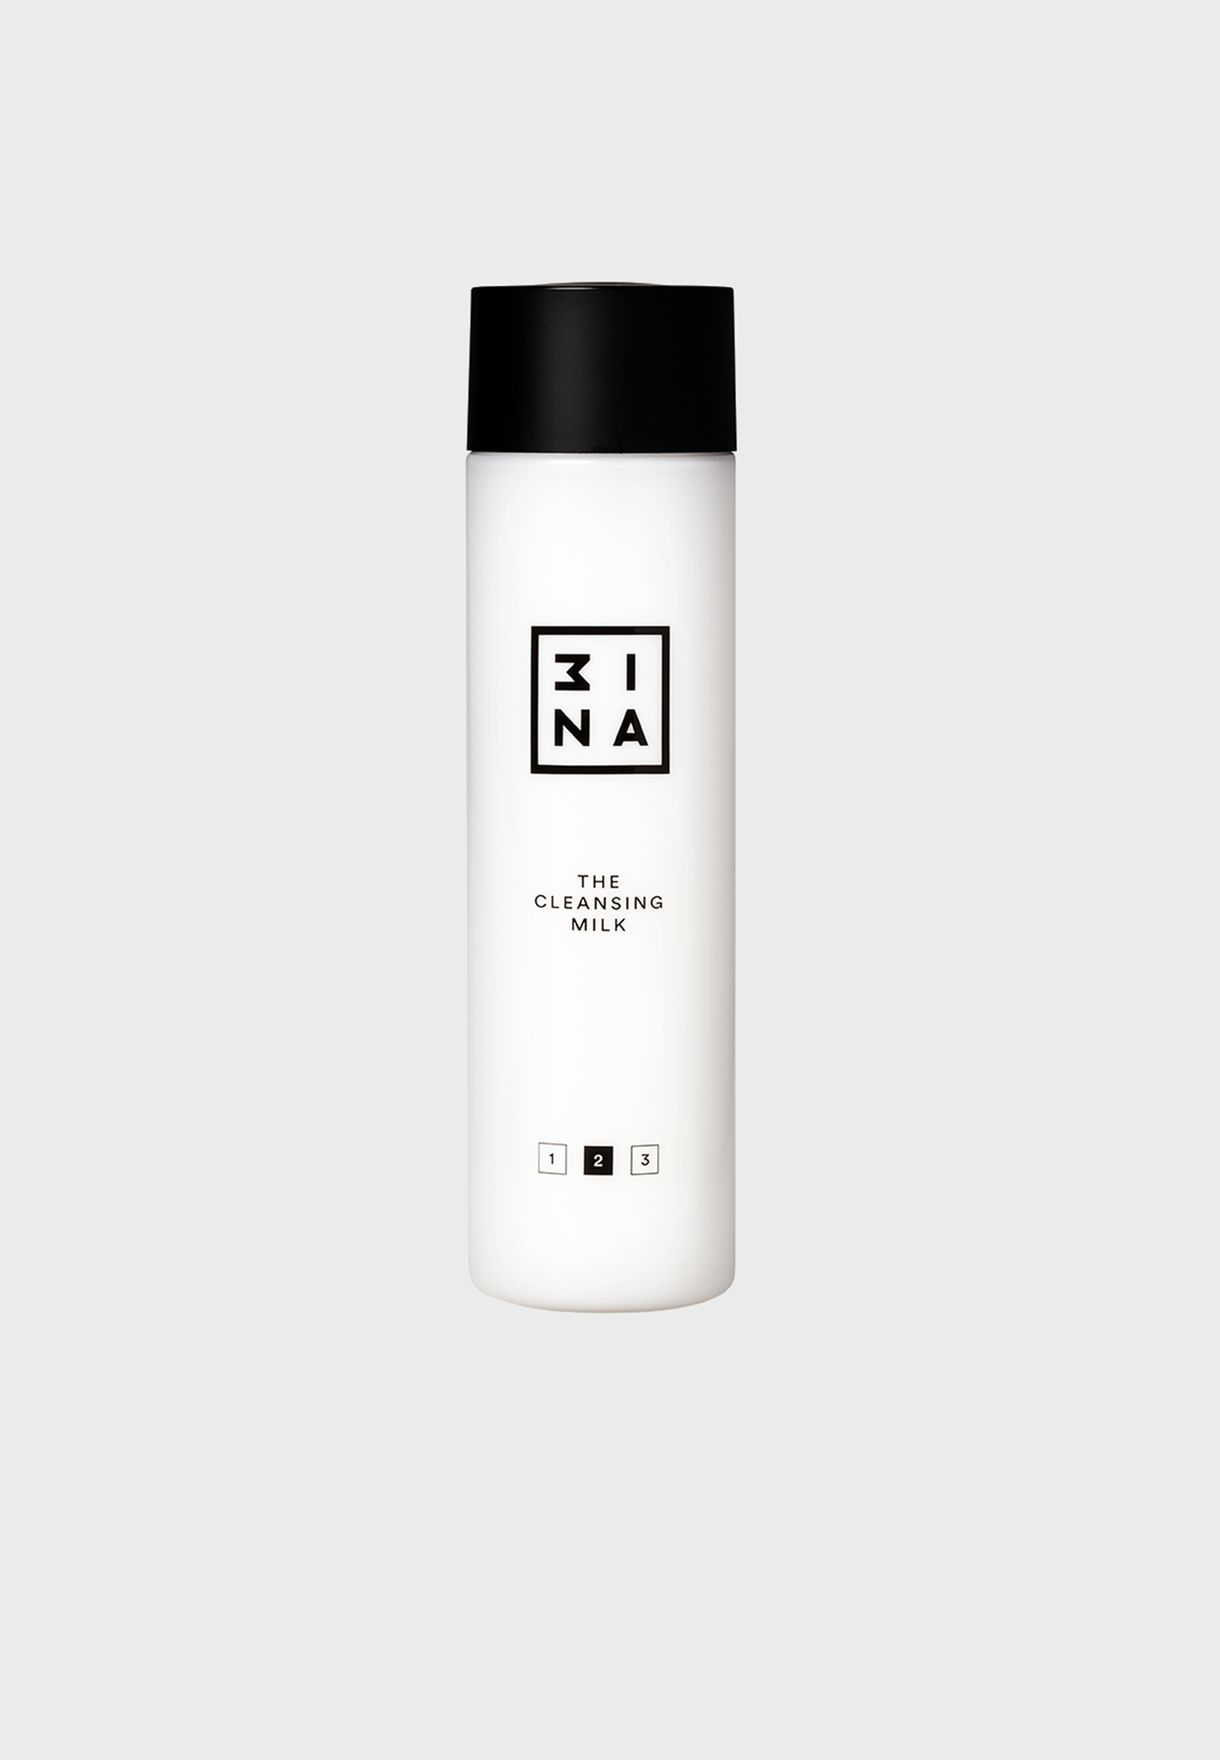 The Cleansing Milk